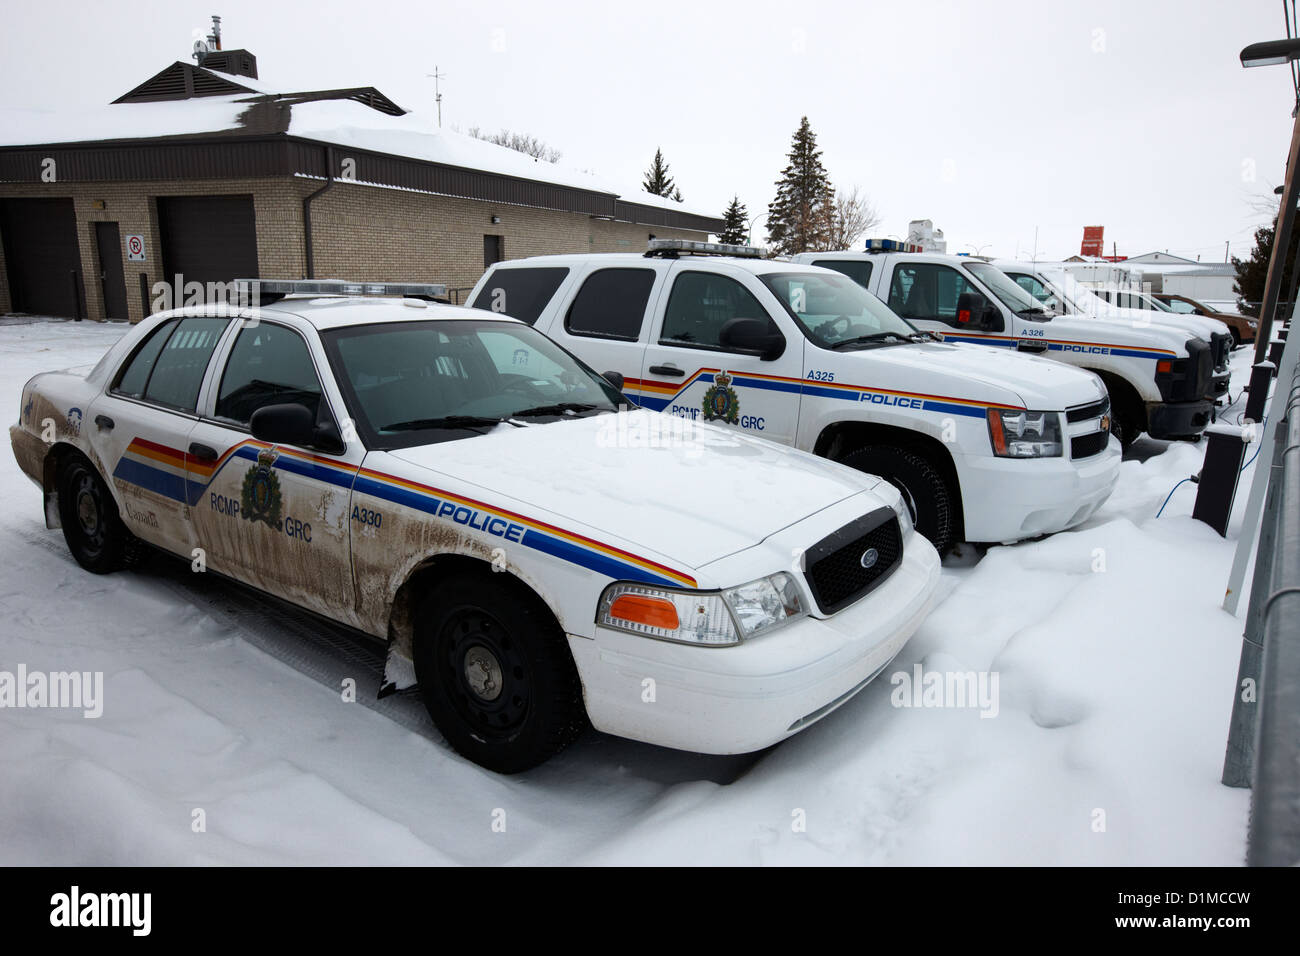 Rcmp Royal Canadian Mounted Police Vehicles Outside